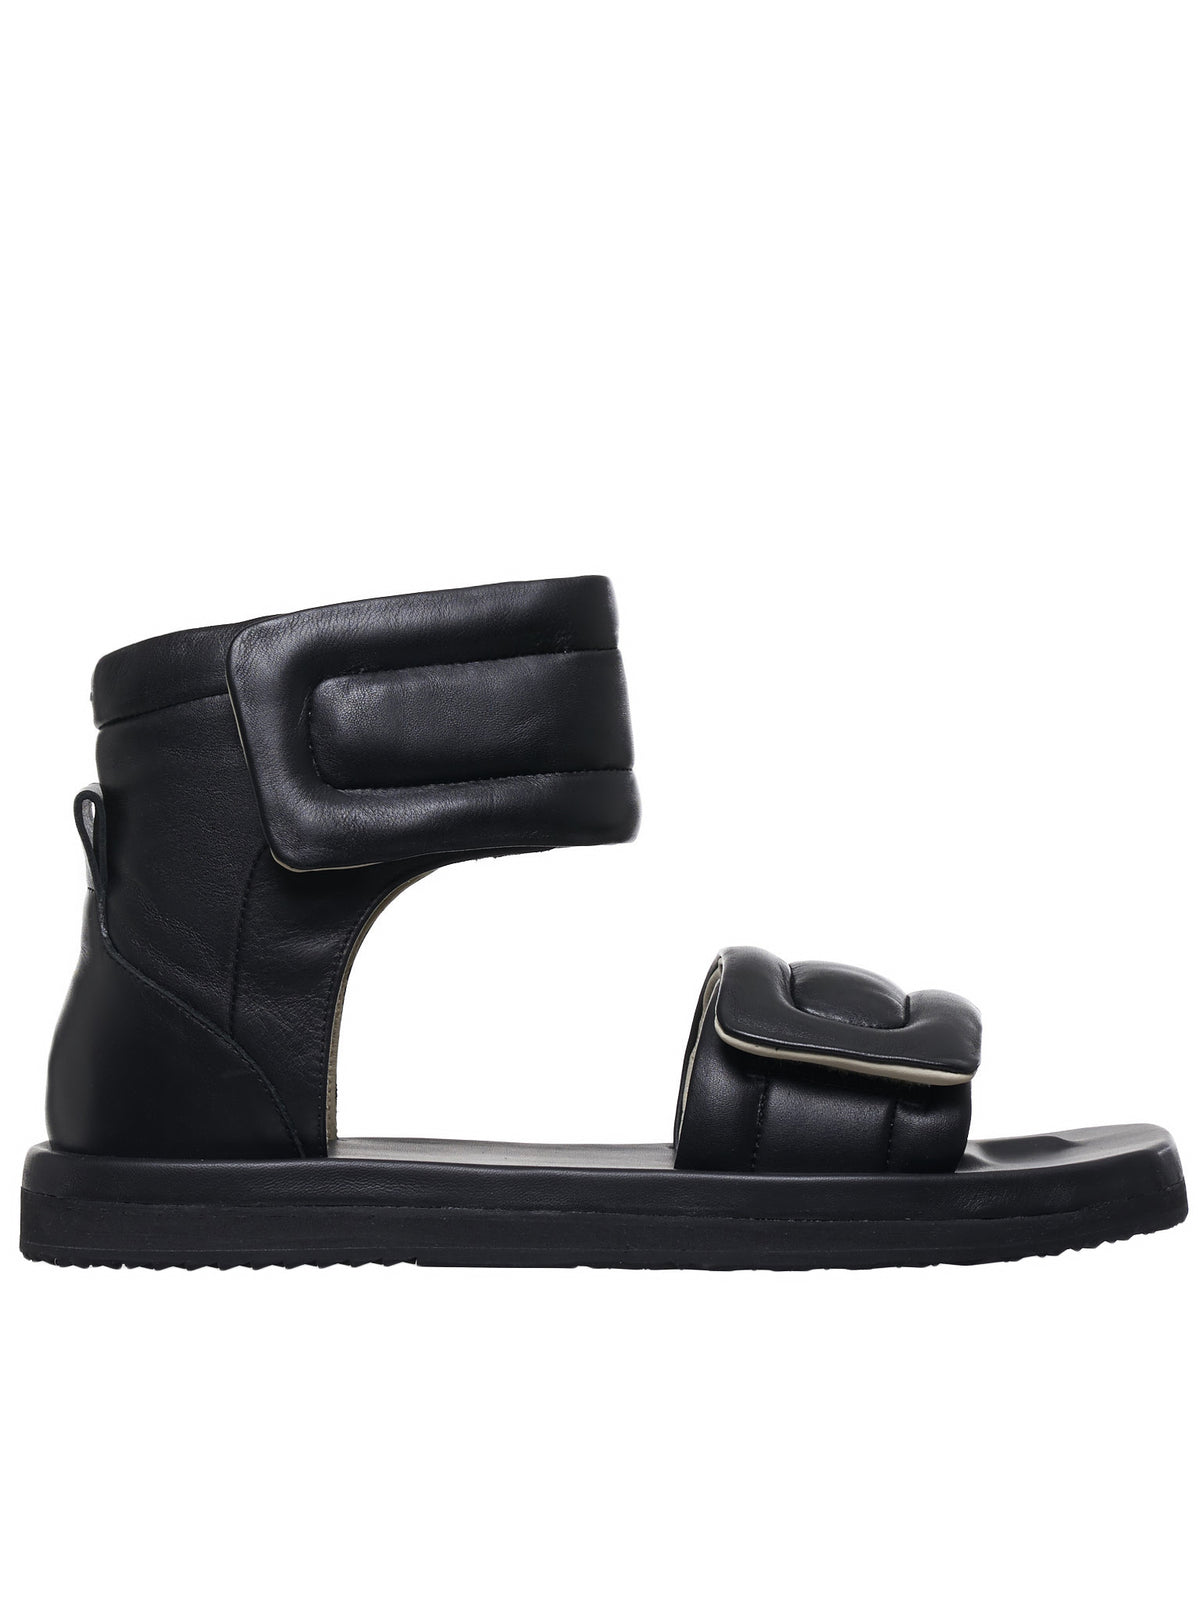 Future Sandals (S37WP0065-P0589-BLACK)